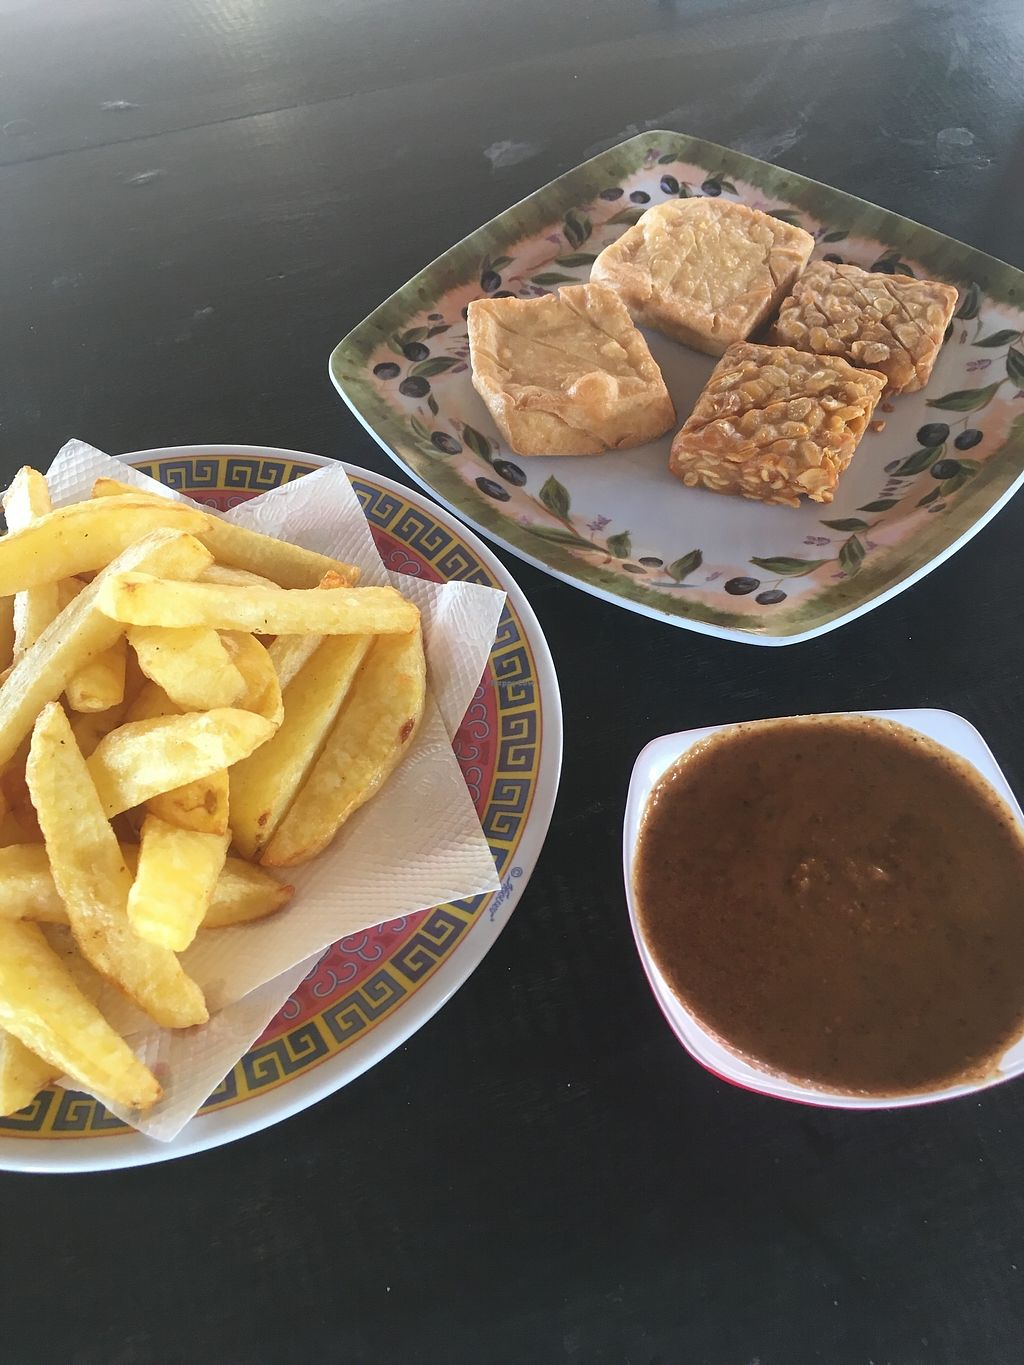 """Photo of Ryan's Cafe  by <a href=""""/members/profile/jojoinbrighton"""">jojoinbrighton</a> <br/>Tempeh, peanut sauce, french fries <br/> August 5, 2017  - <a href='/contact/abuse/image/97916/289453'>Report</a>"""